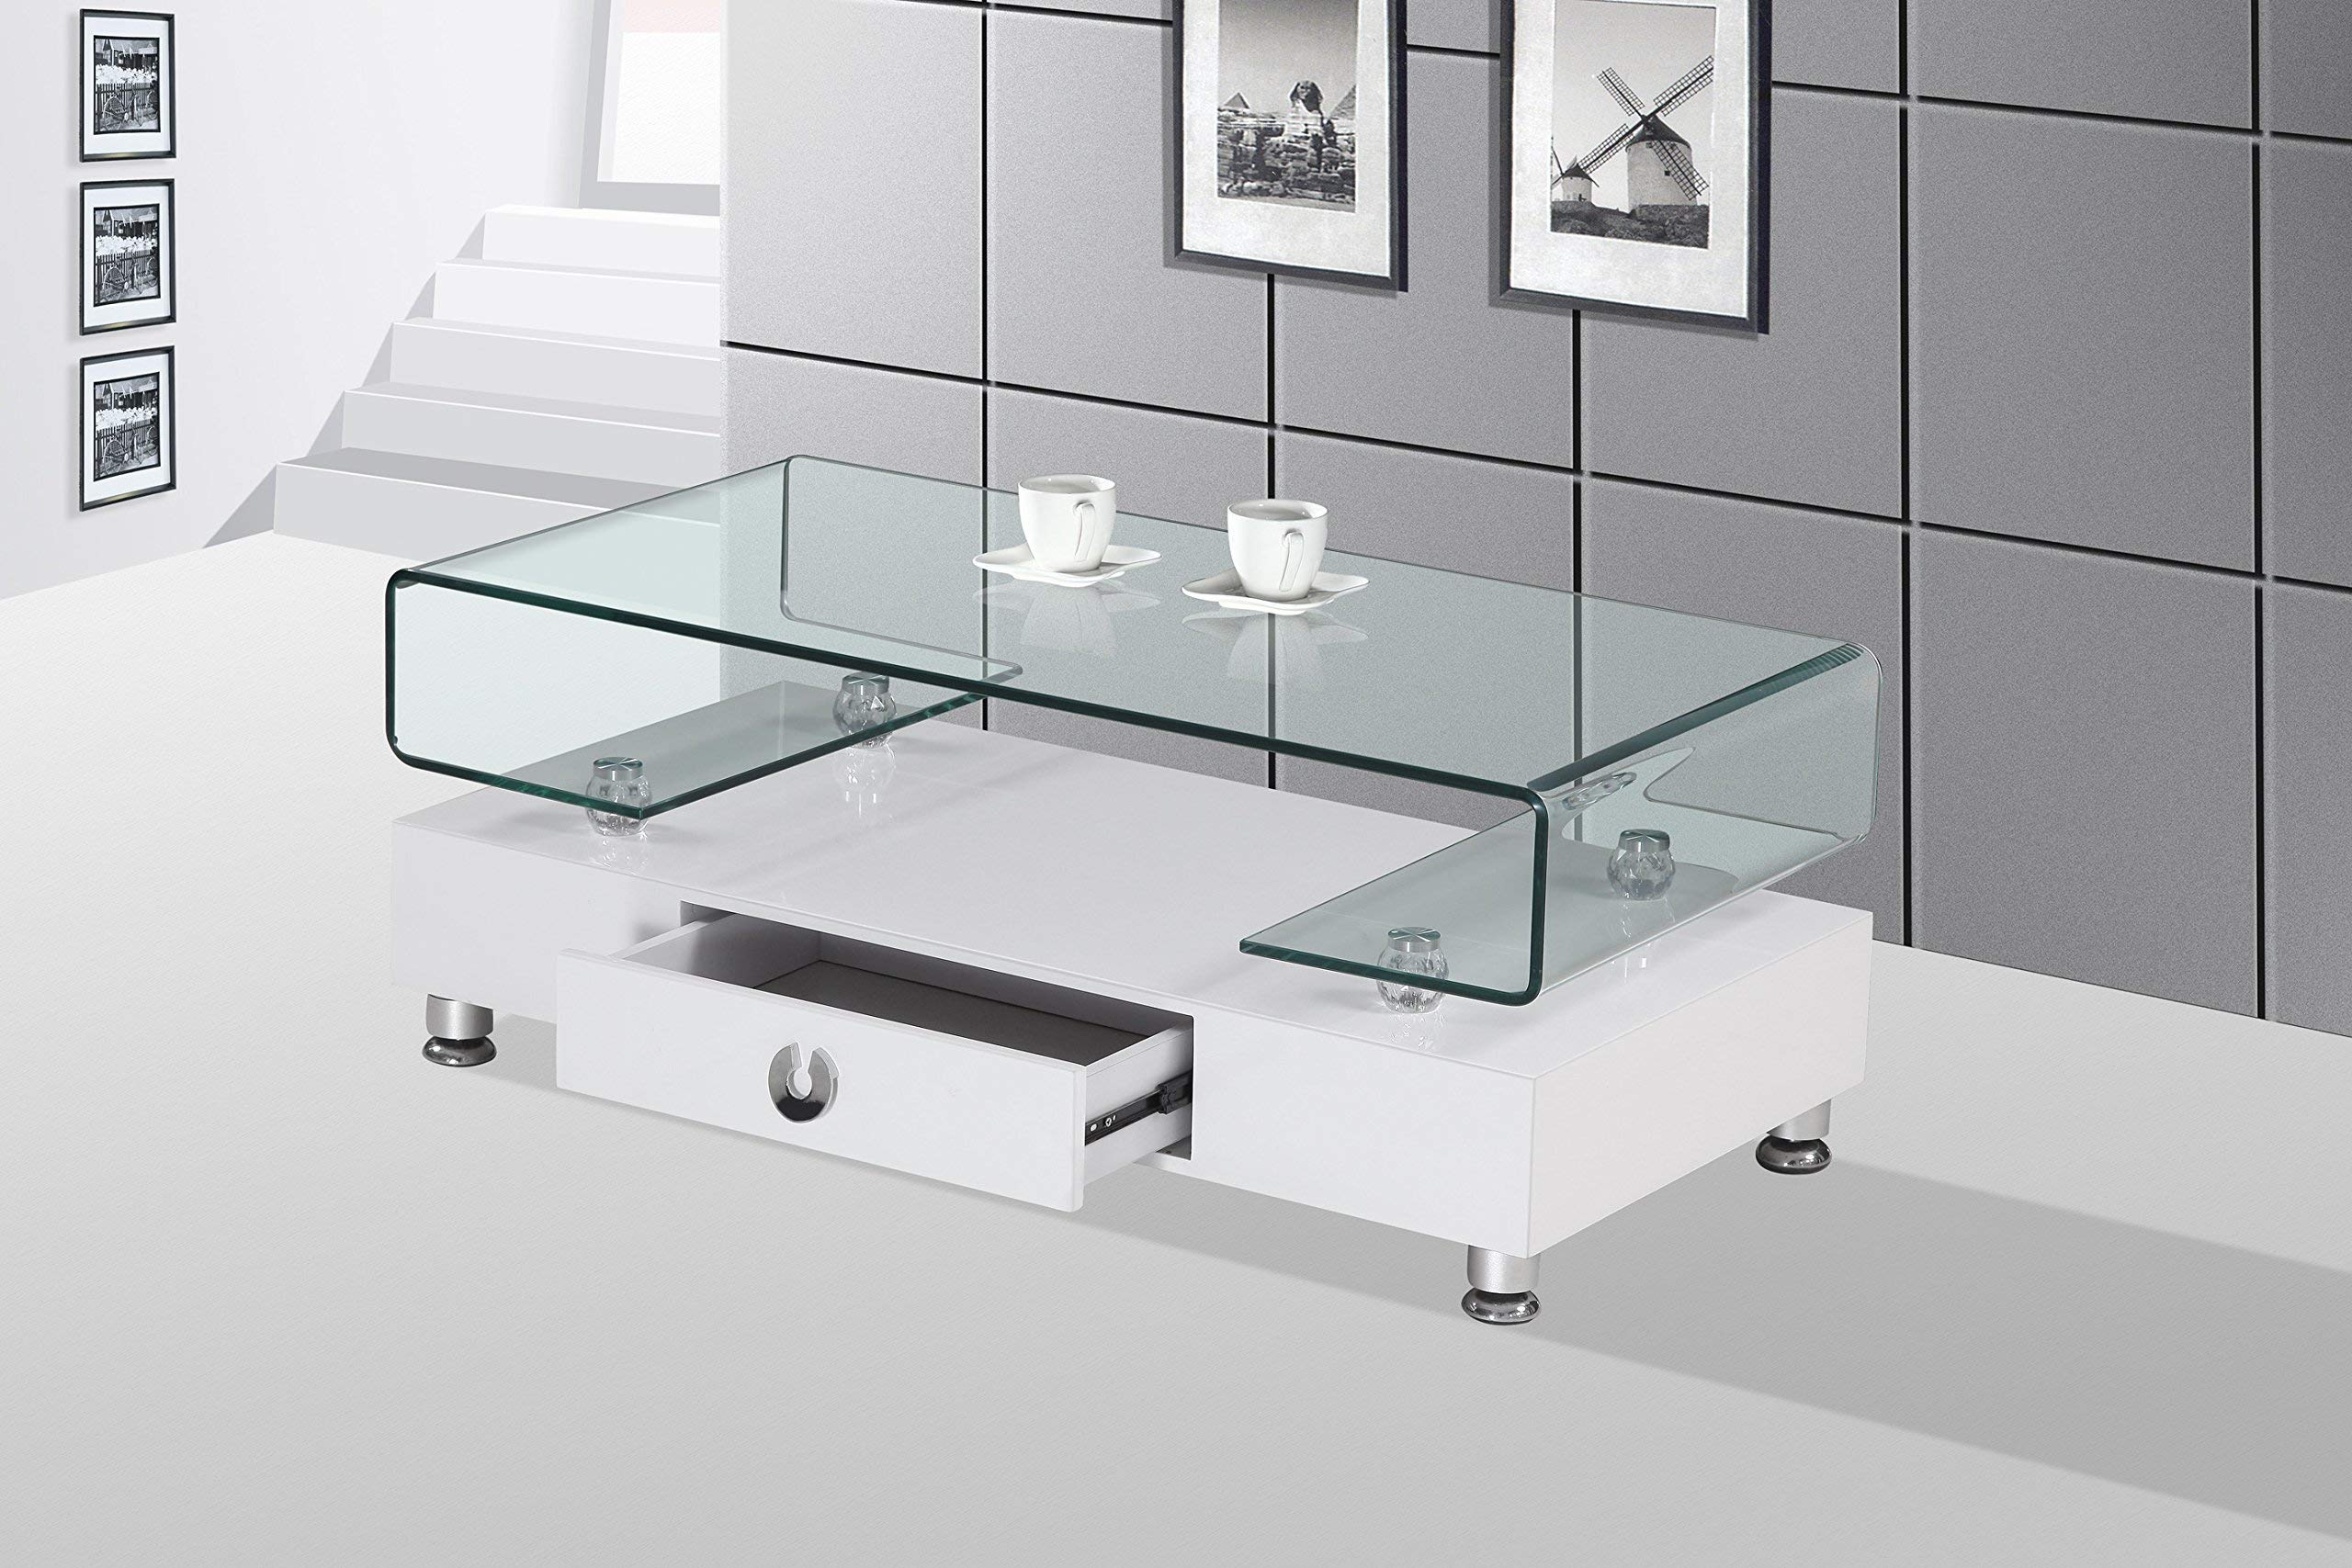 Best Quality Furniture CT35 Glass Top Coffee Table, White by Best Quality